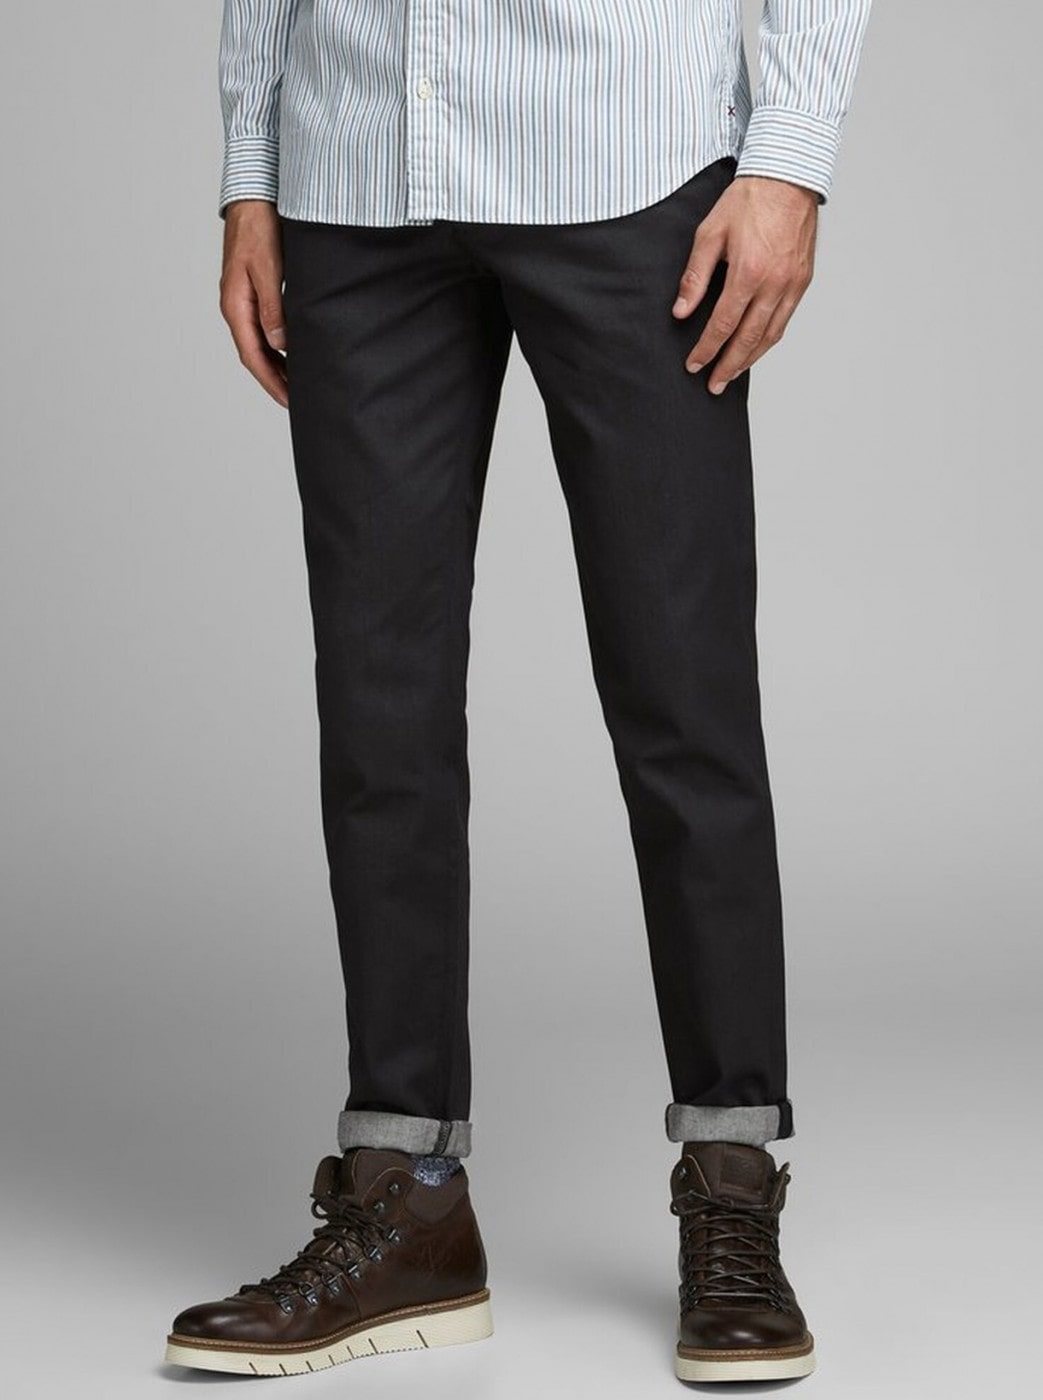 Black Chino Pants Jack & Jones Ace